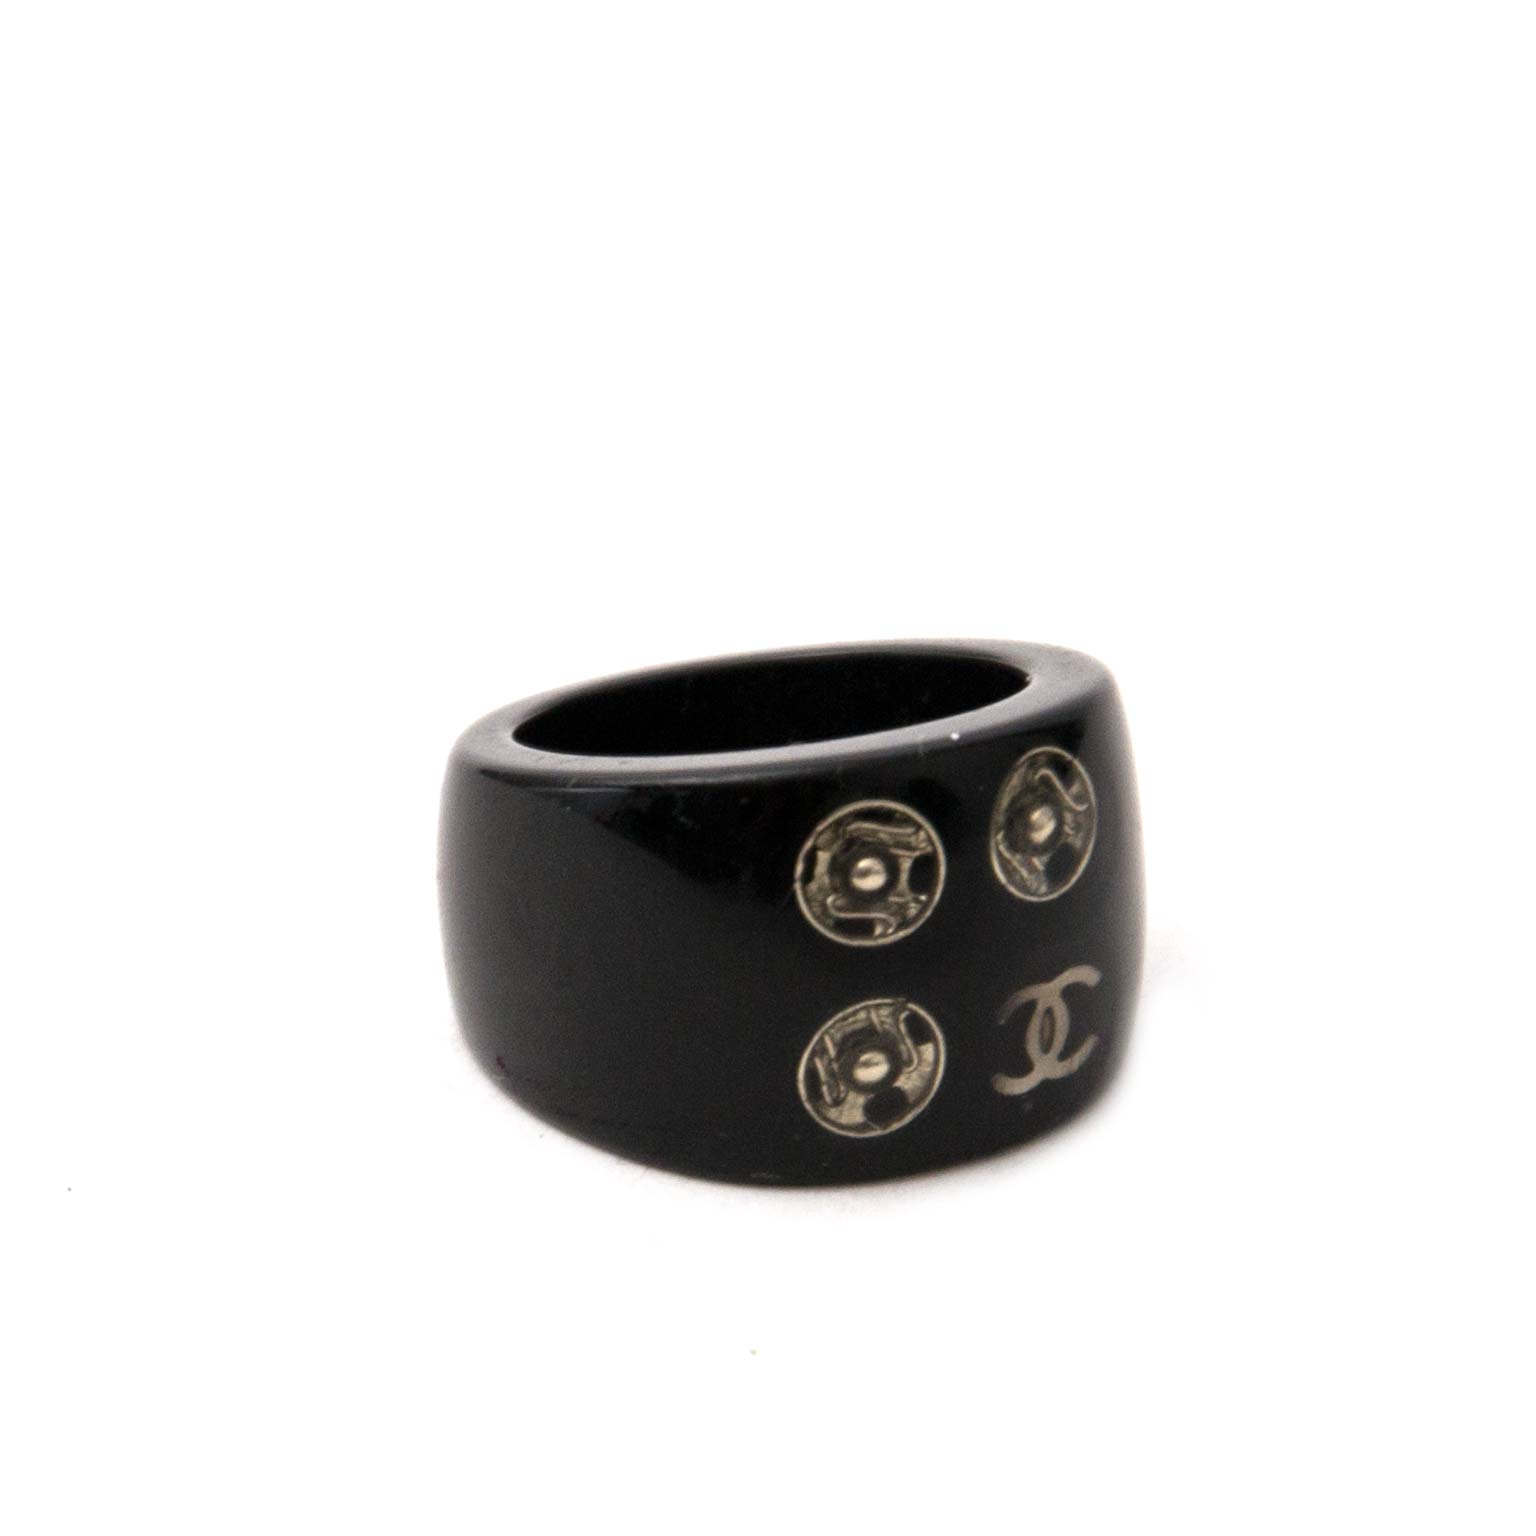 chanel black cc ring now online at labellov.com for the best price